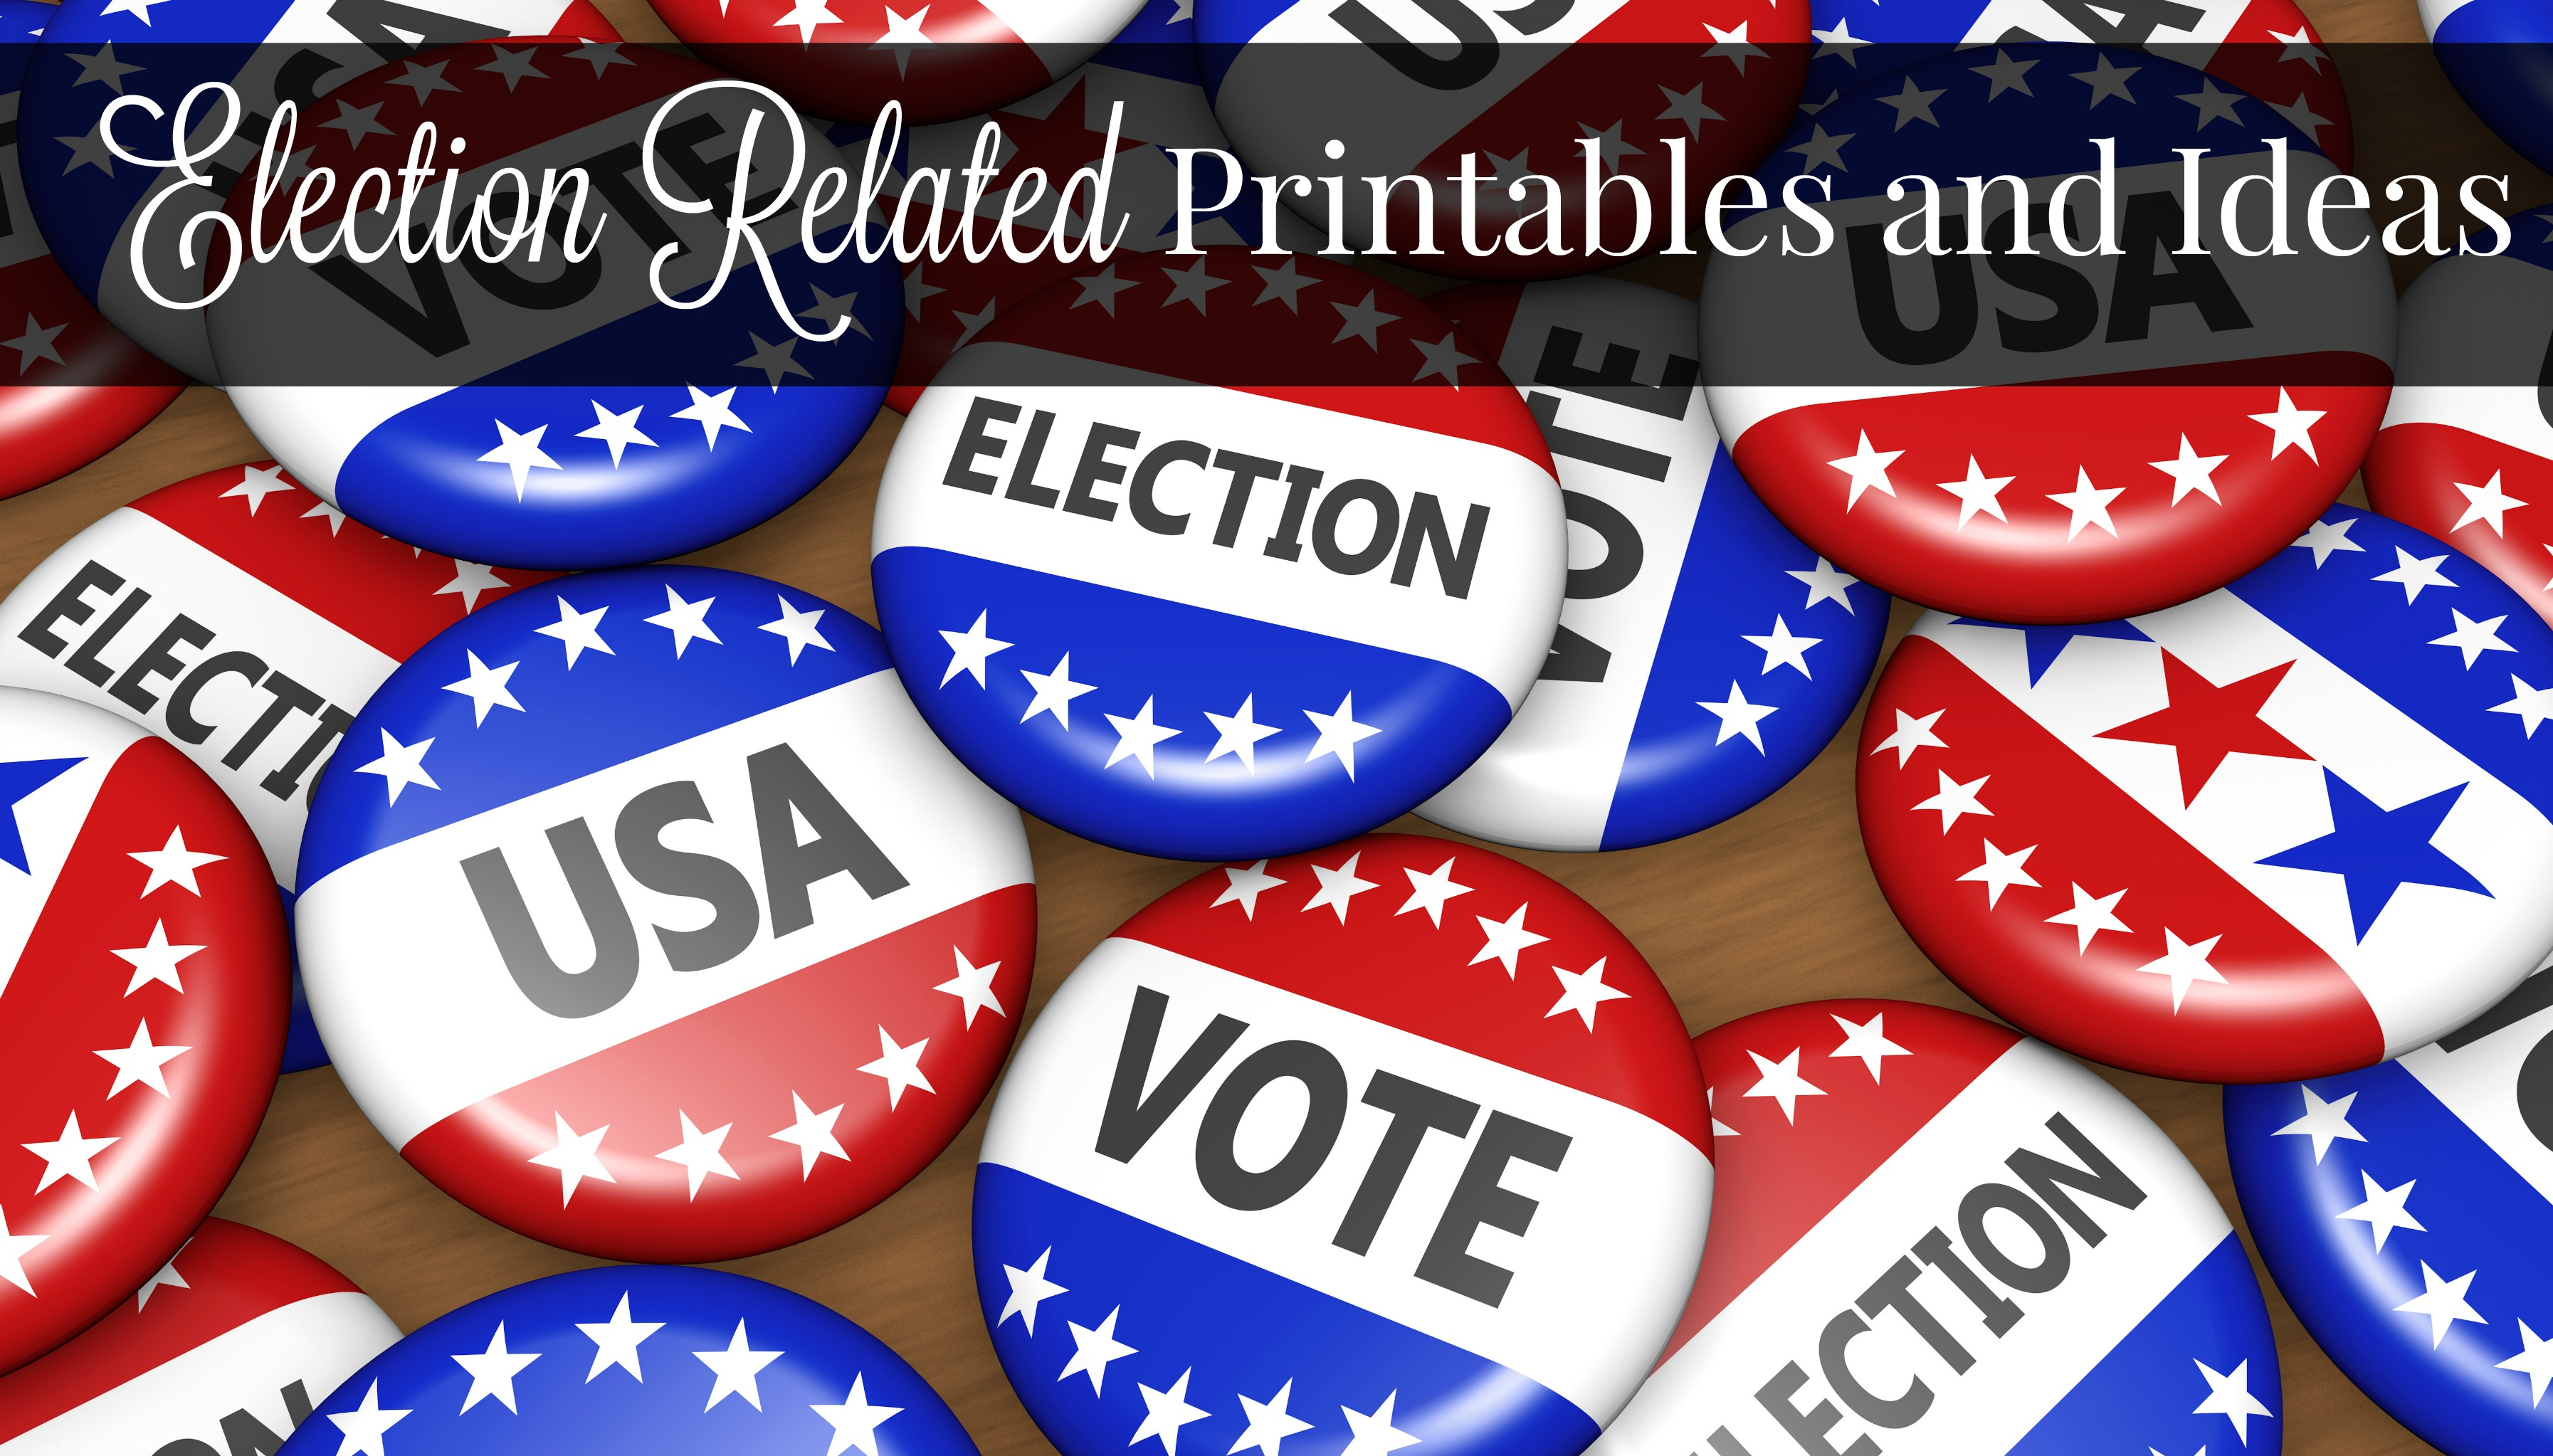 Election Related Printables and Ideas